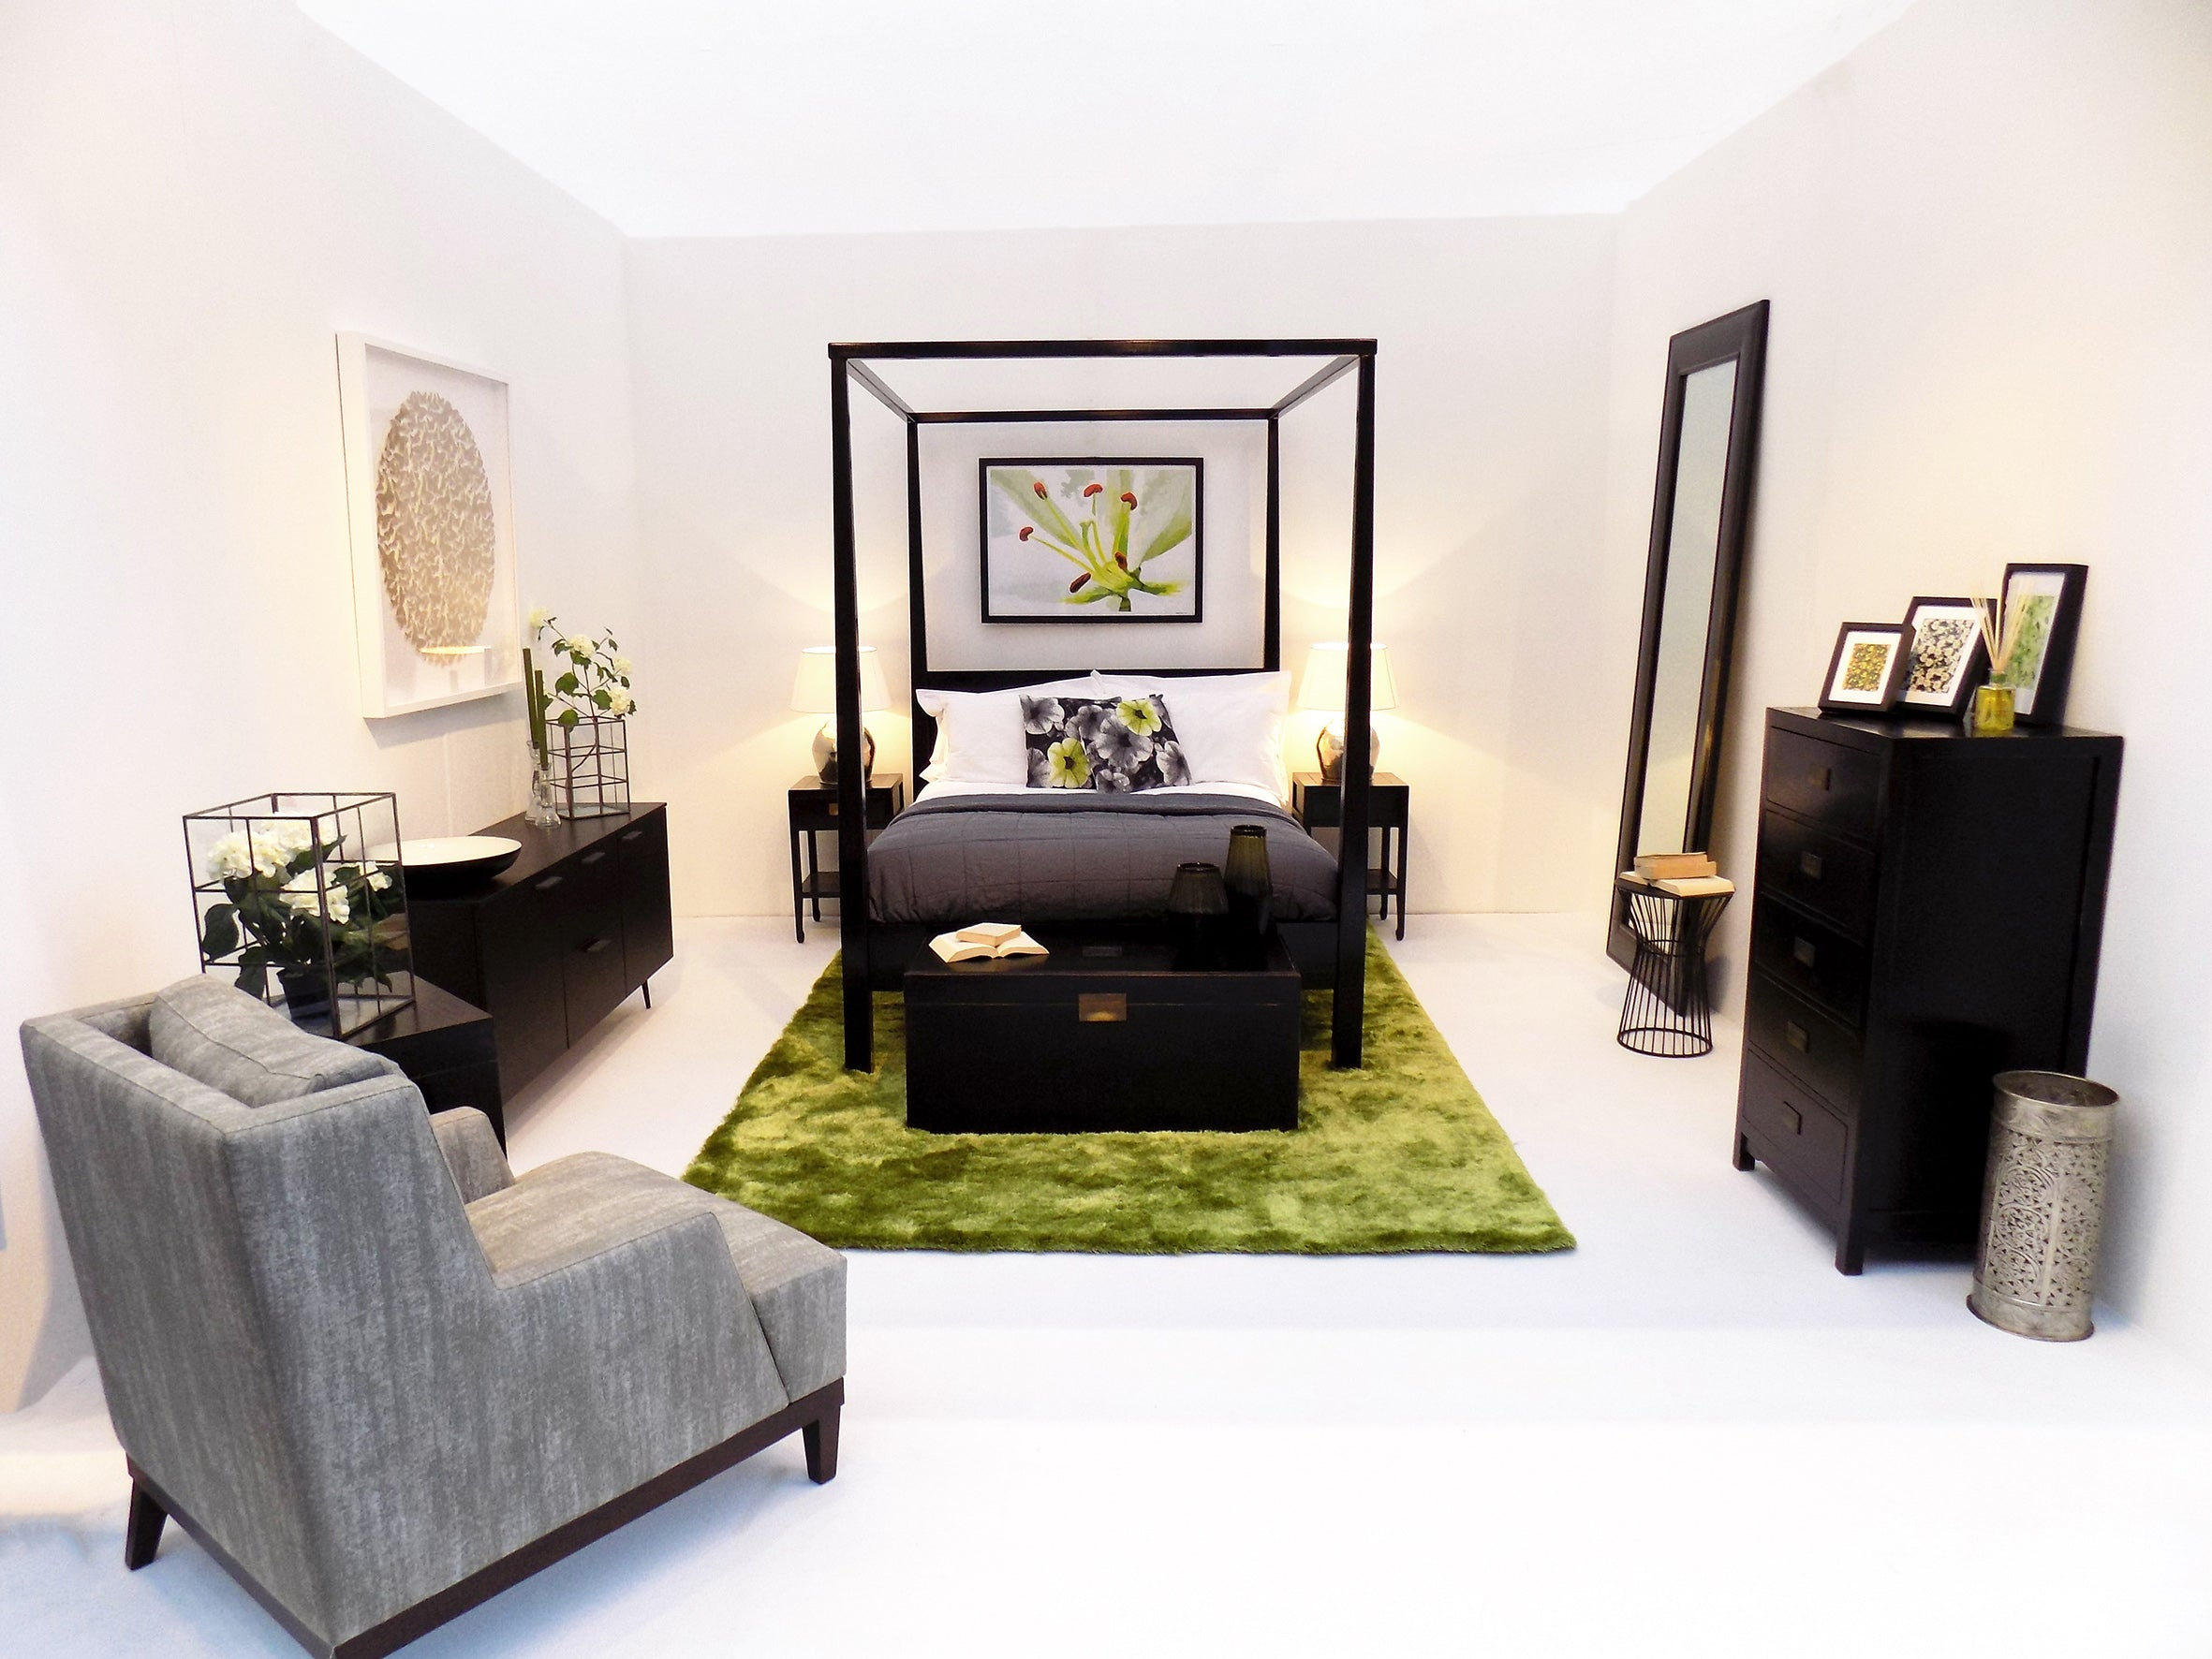 The House Fair Style Rooms Martyn White Designs